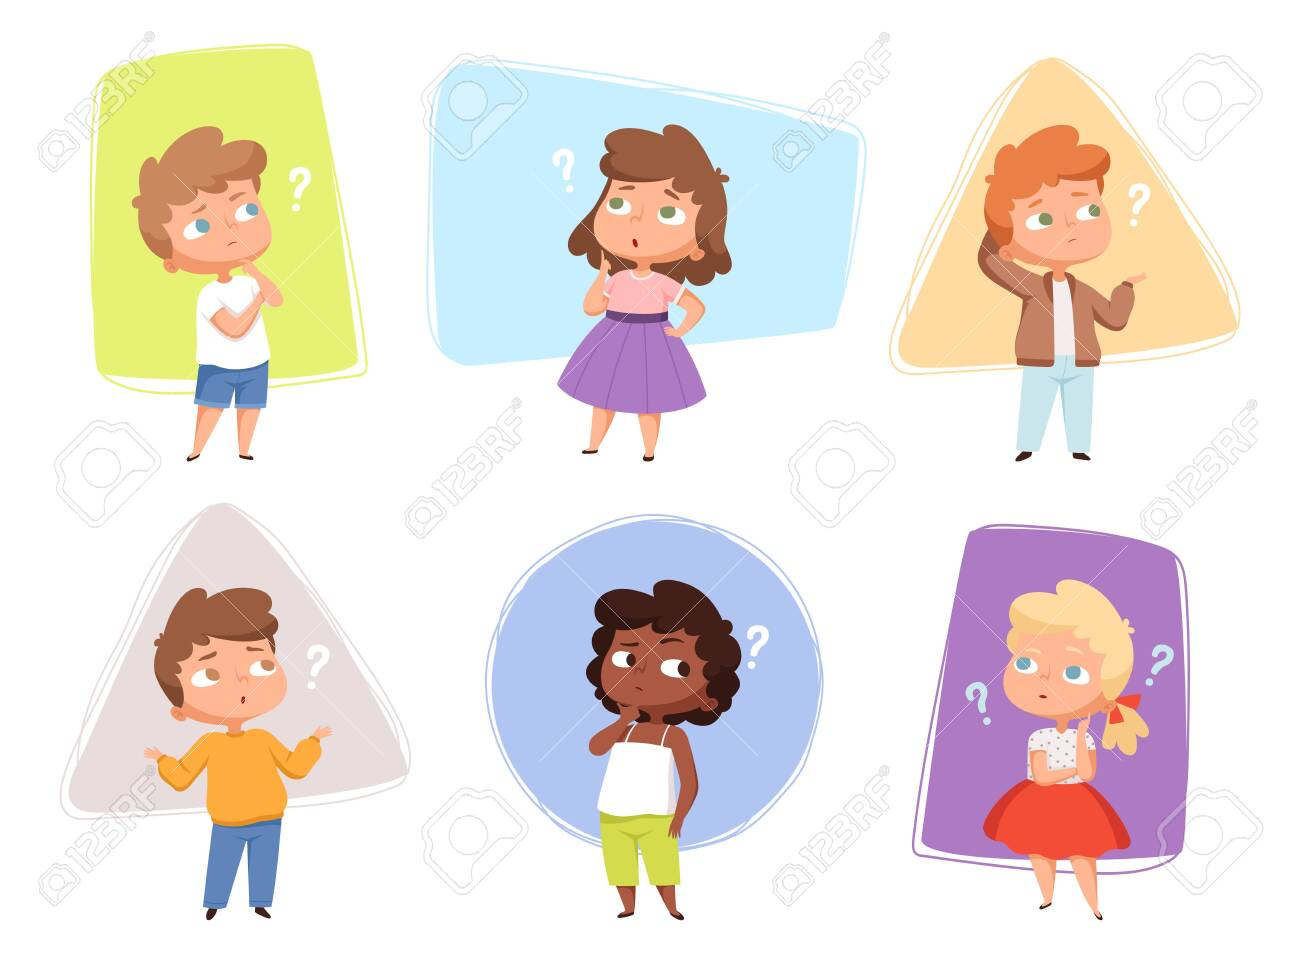 Thinking kids. Children asking question expression and question marks teens vector characters. Kids asking question, expression confuse, puzzled and confused children illustration - 149848015